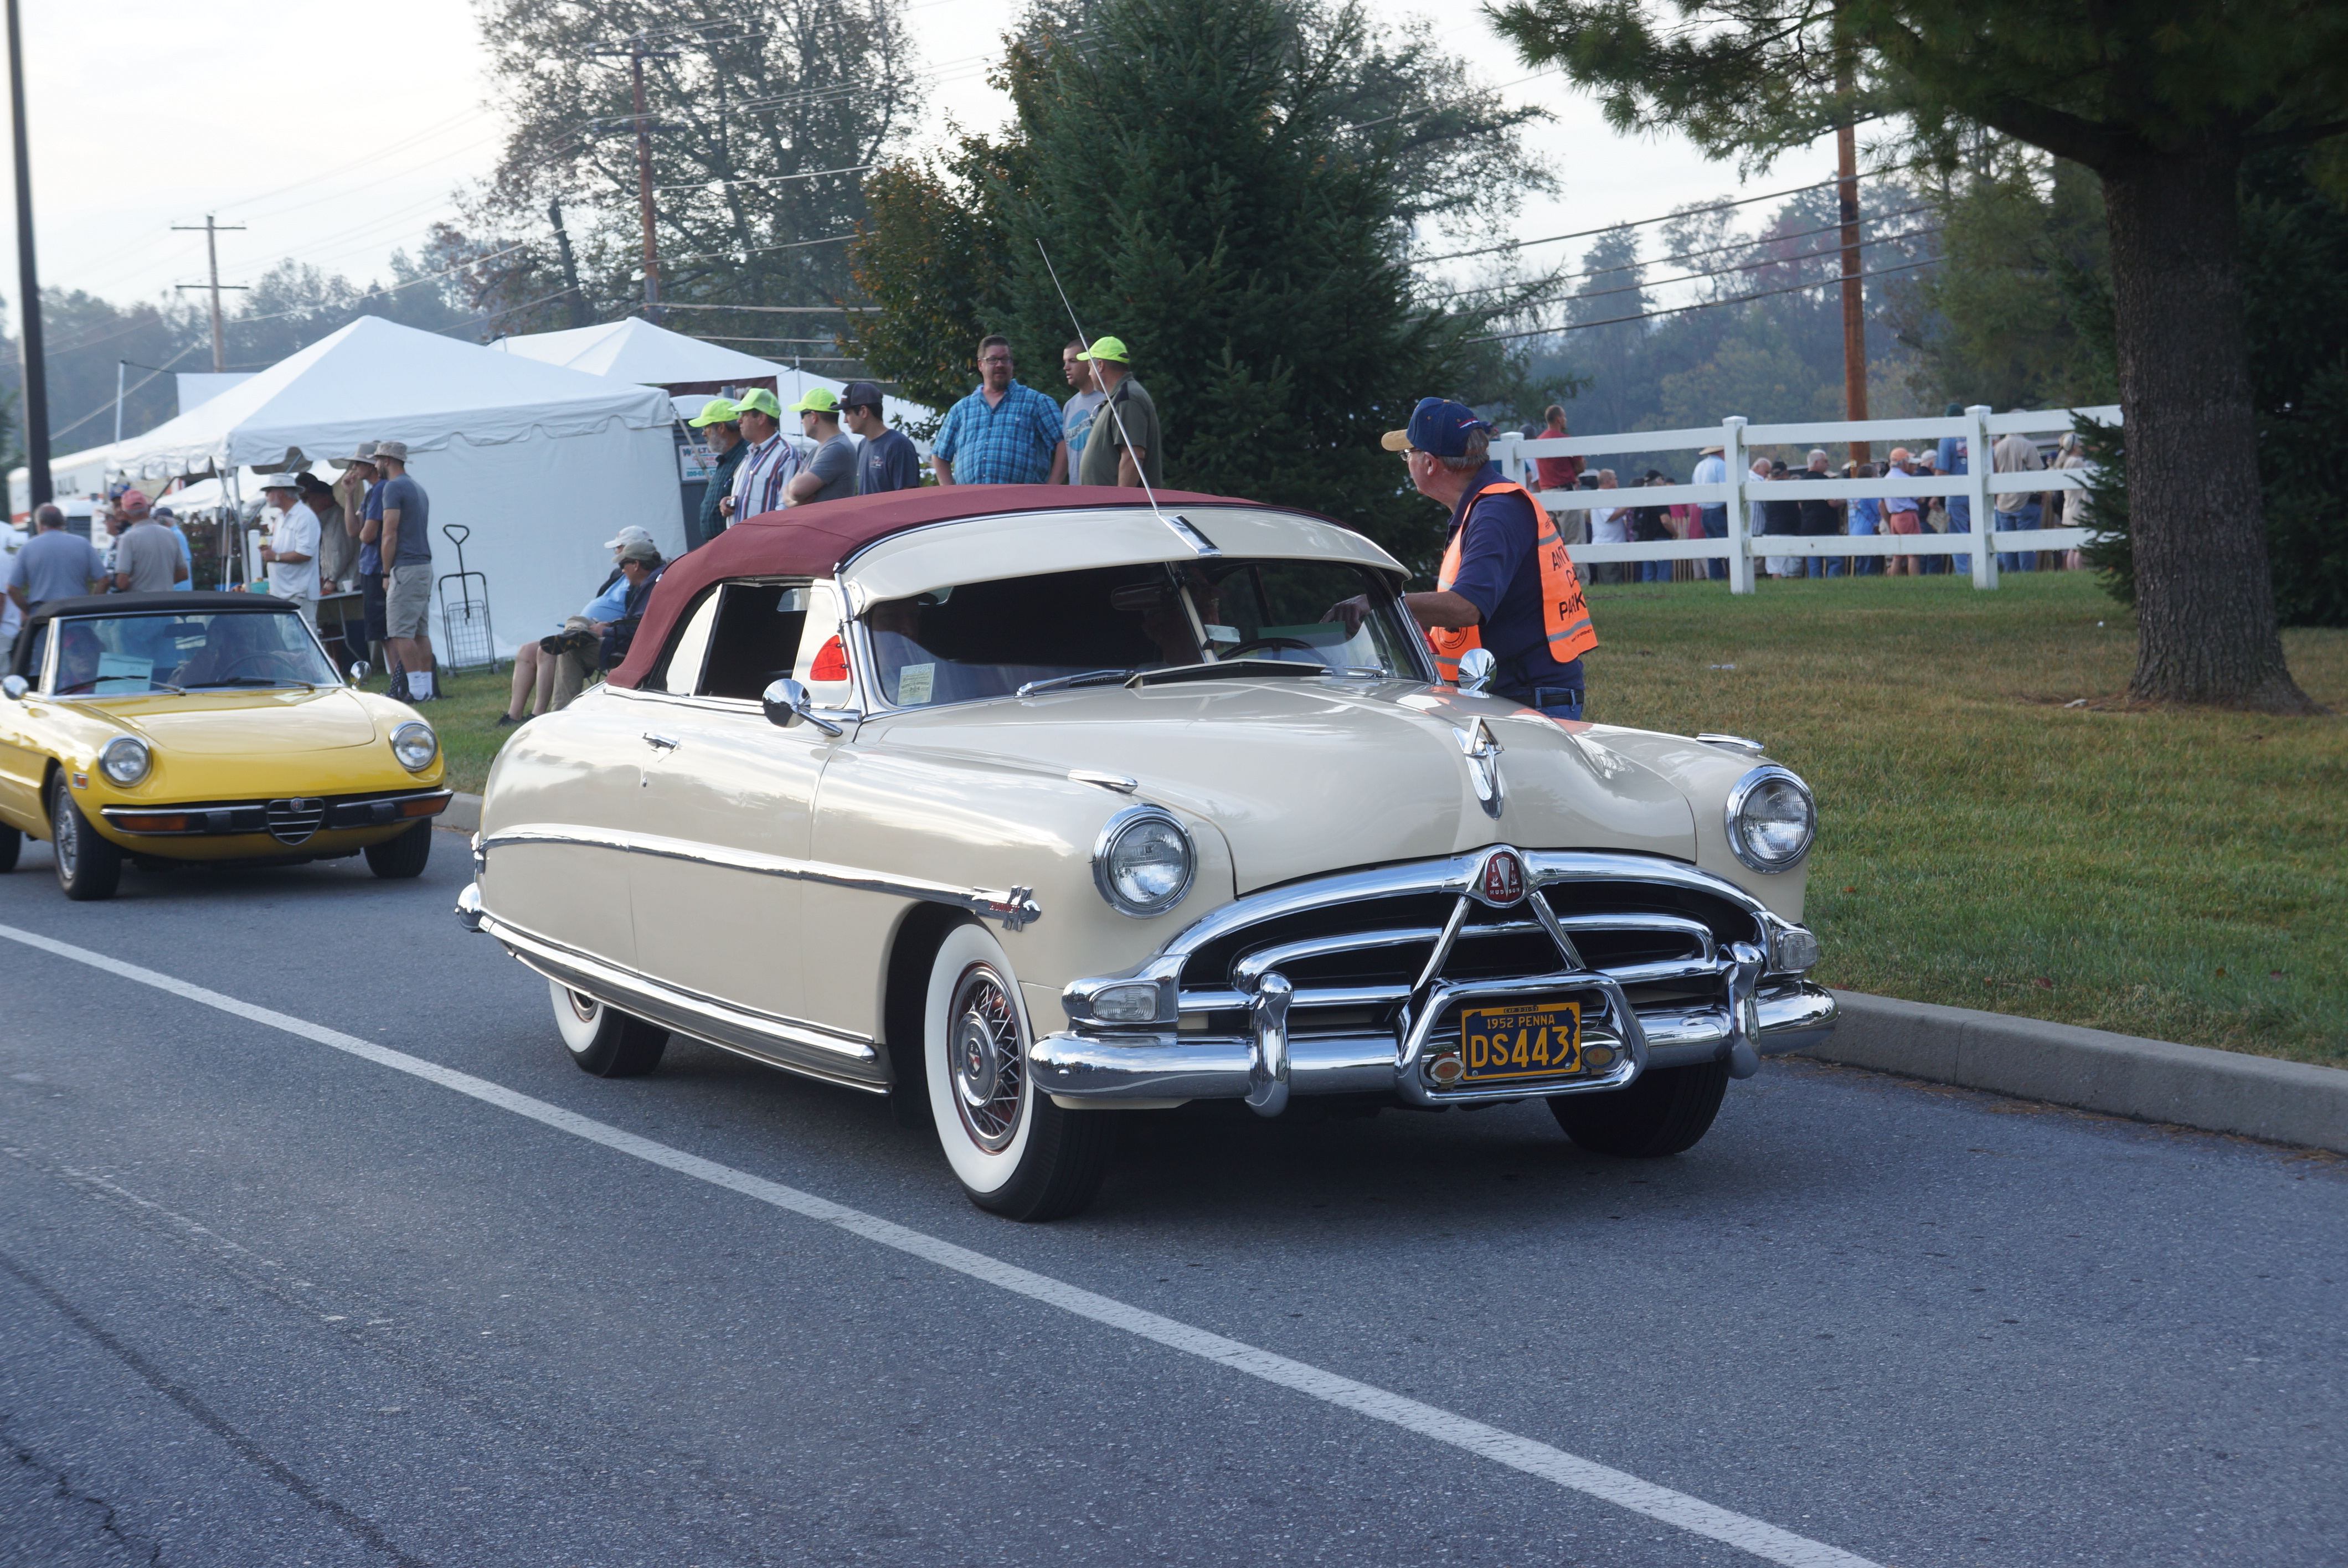 AACA Fall Hershey Part The Saturday Car Show Richardscarblog - Hershey car show schedule